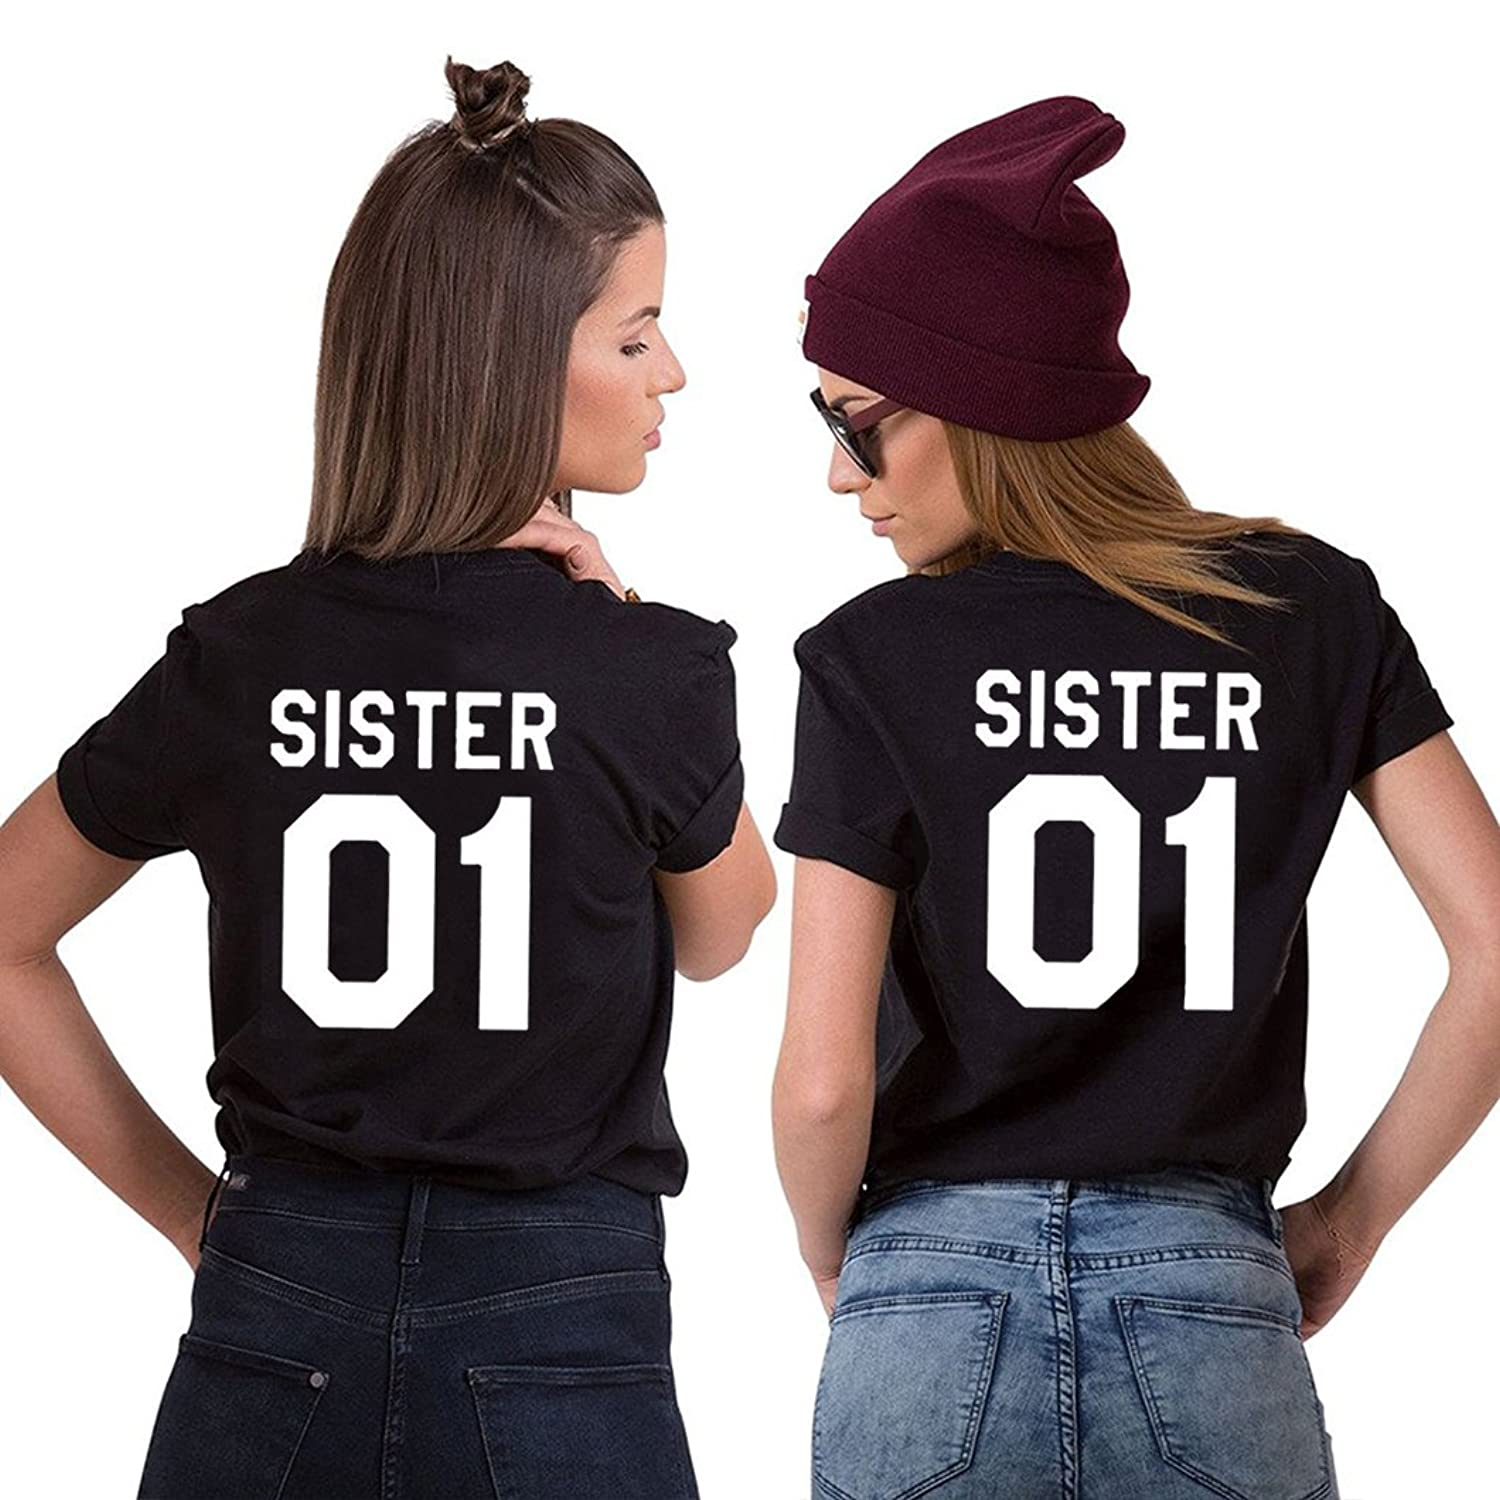 396330aa2 100% cotton T-shirts, no shrinkage, no fading and no allergy. Best choice  of gift for your sister/friend. Scope of delivery: 2 * tShirt. Material:  cotton